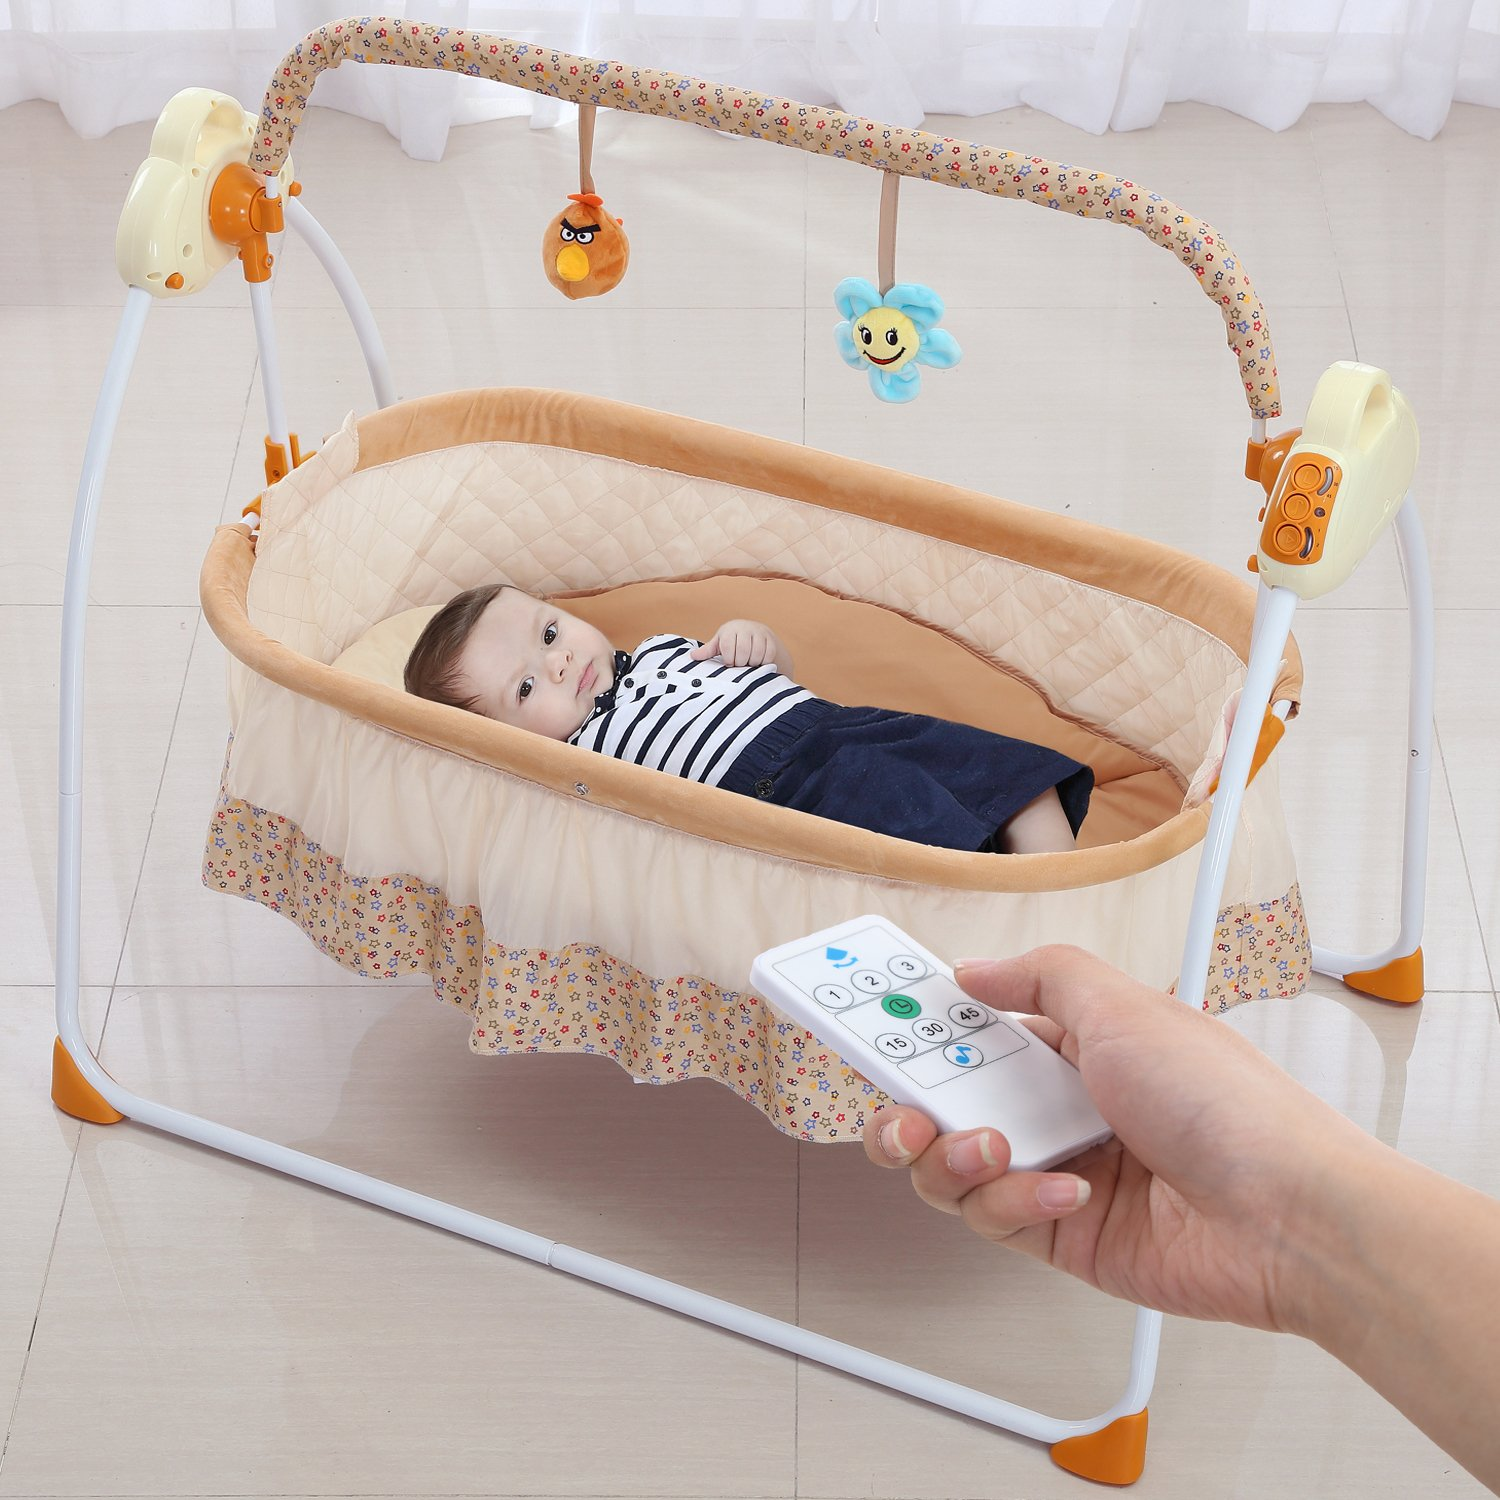 Electric Baby bassinet Swing, Music Remoter Control Sleeping Basket Bed(brown)